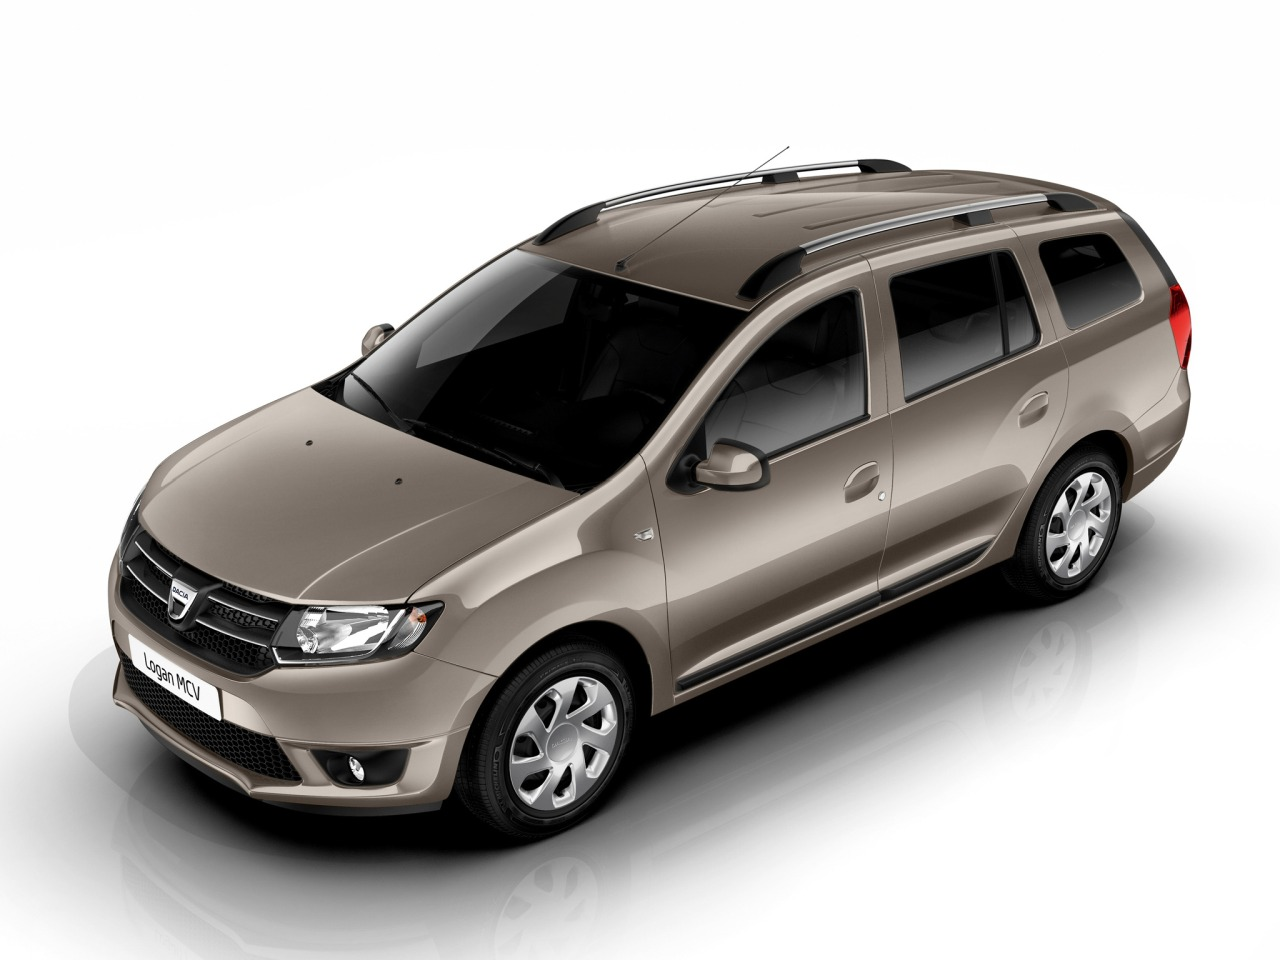 dacia logan mcv 2013 autos post. Black Bedroom Furniture Sets. Home Design Ideas